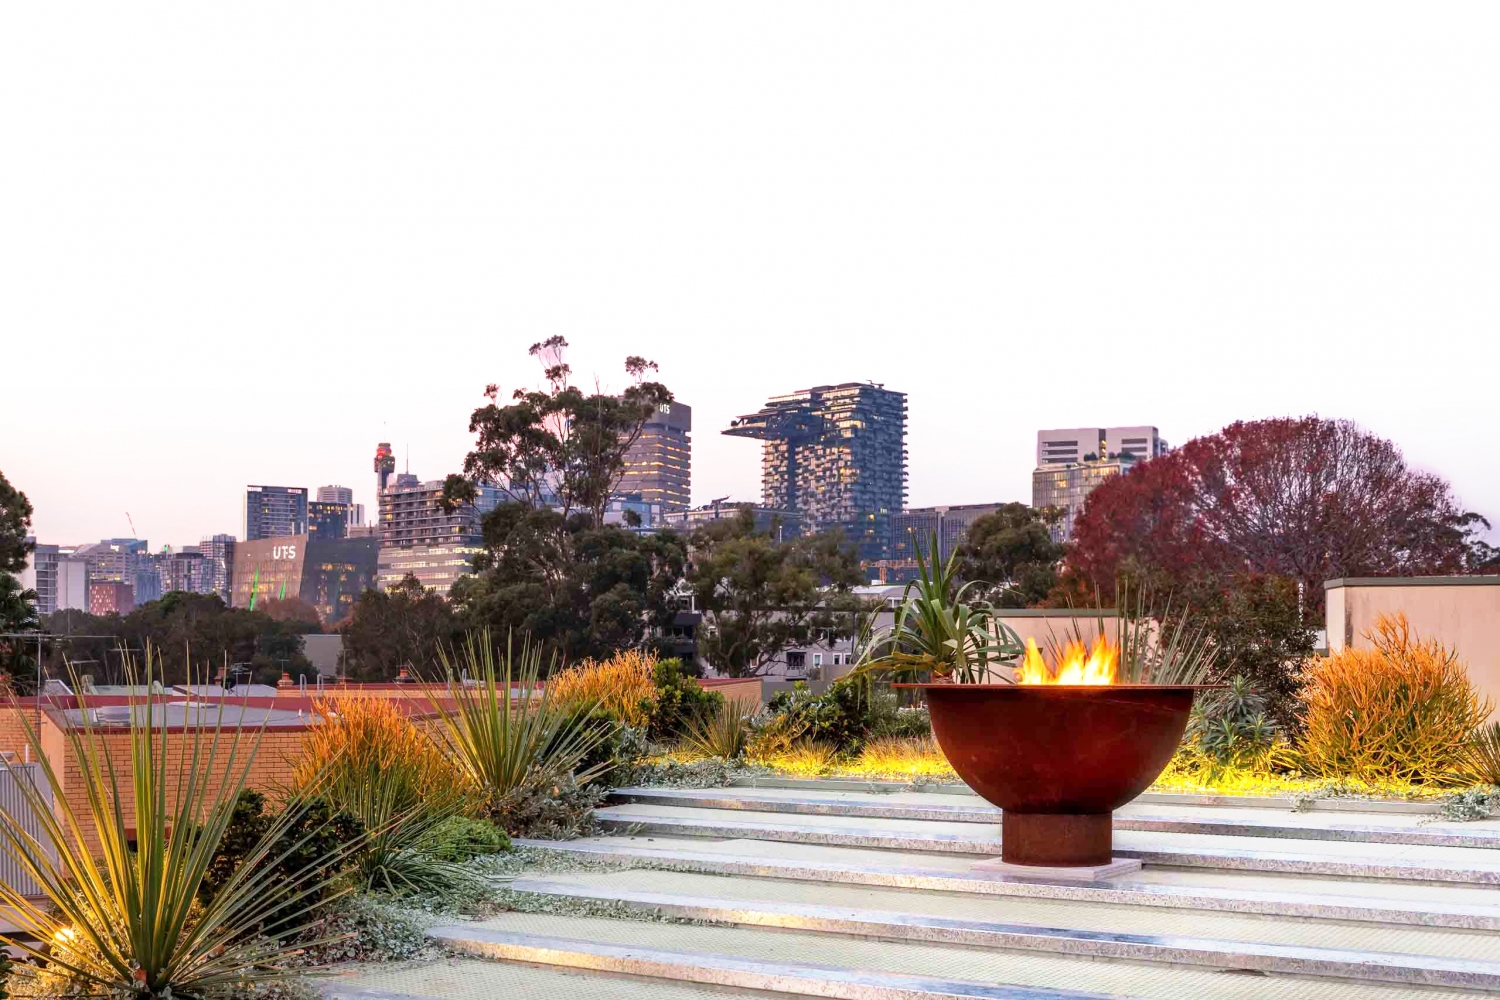 Courtyard amongst trees with a brazier, looking out over a cityscape.